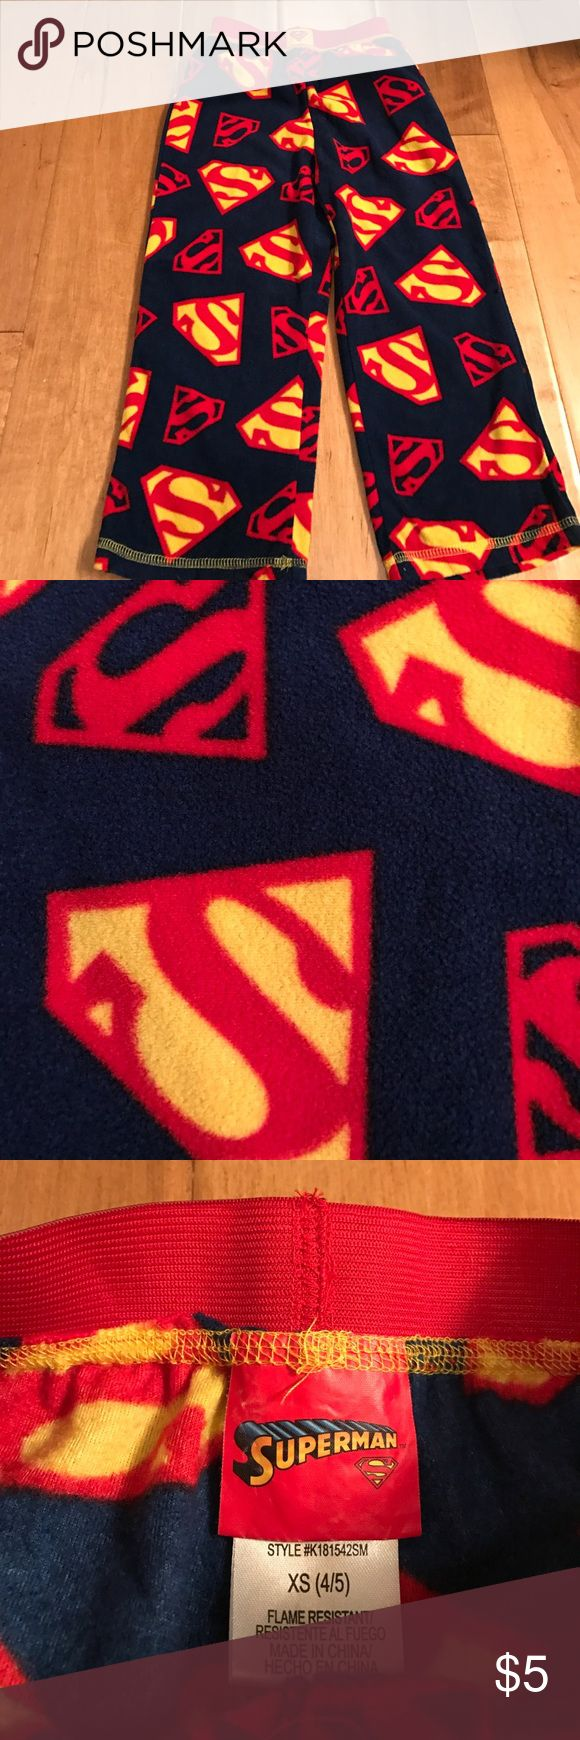 Never Worn Superman Fleece Pants Superman fleece pants is XS (4/5). Never worn! Superman Bottoms Sweatpants & Joggers